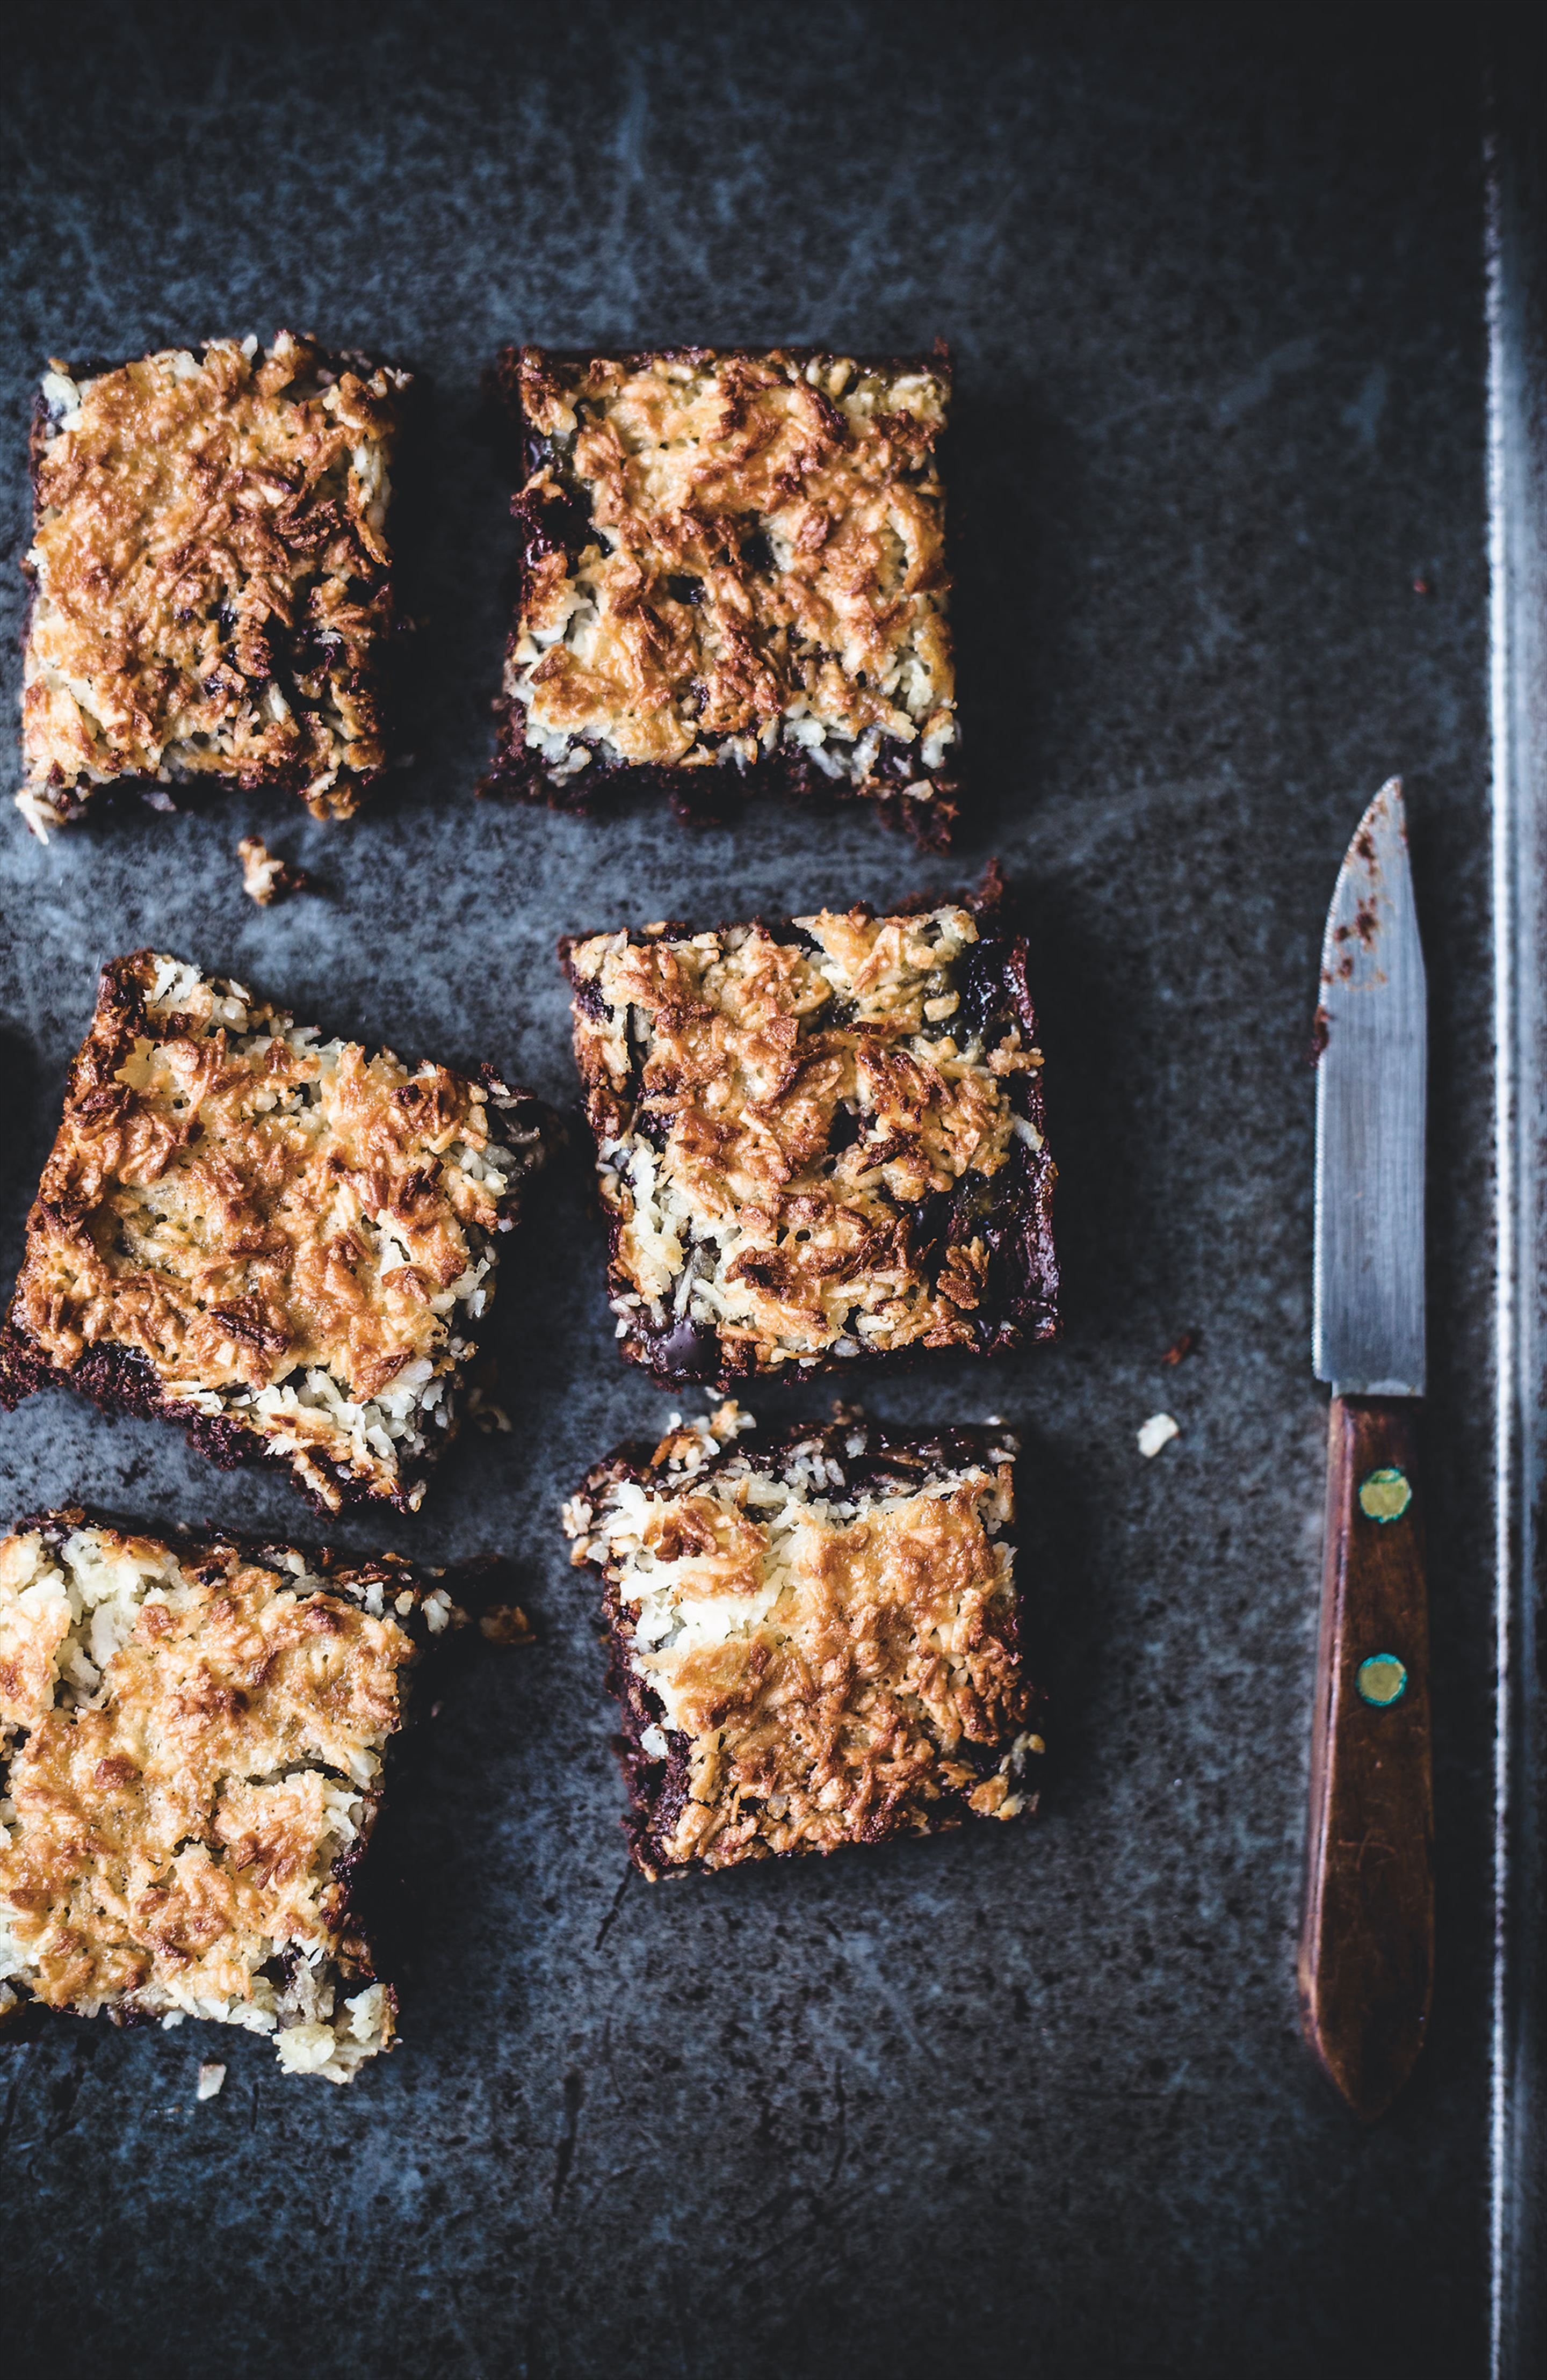 Coconut macaroon brownies